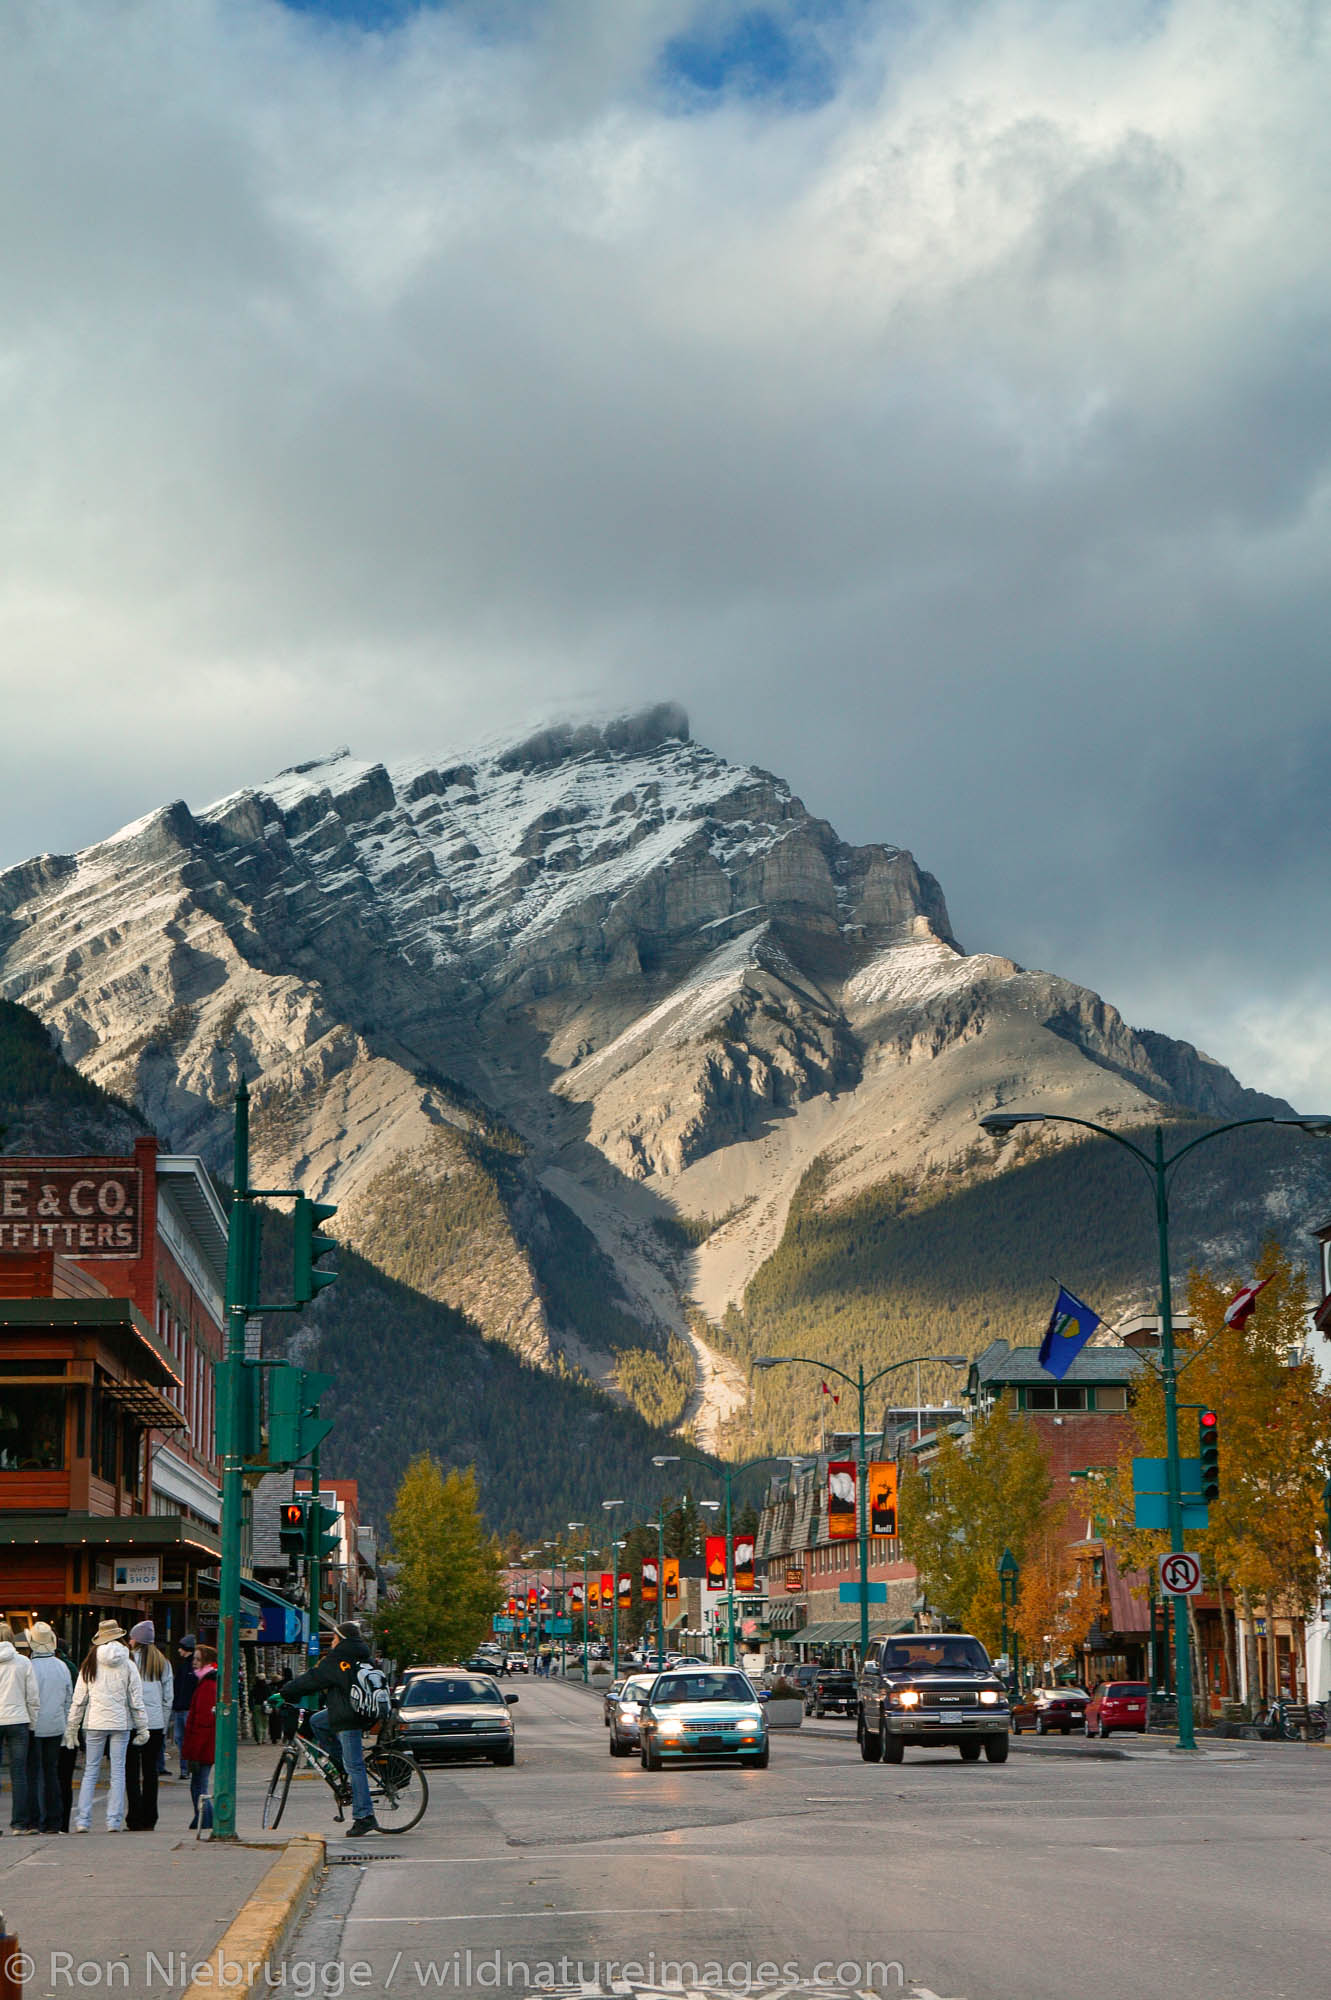 The town of Banff in Banff National Park, Alberta, Canada.